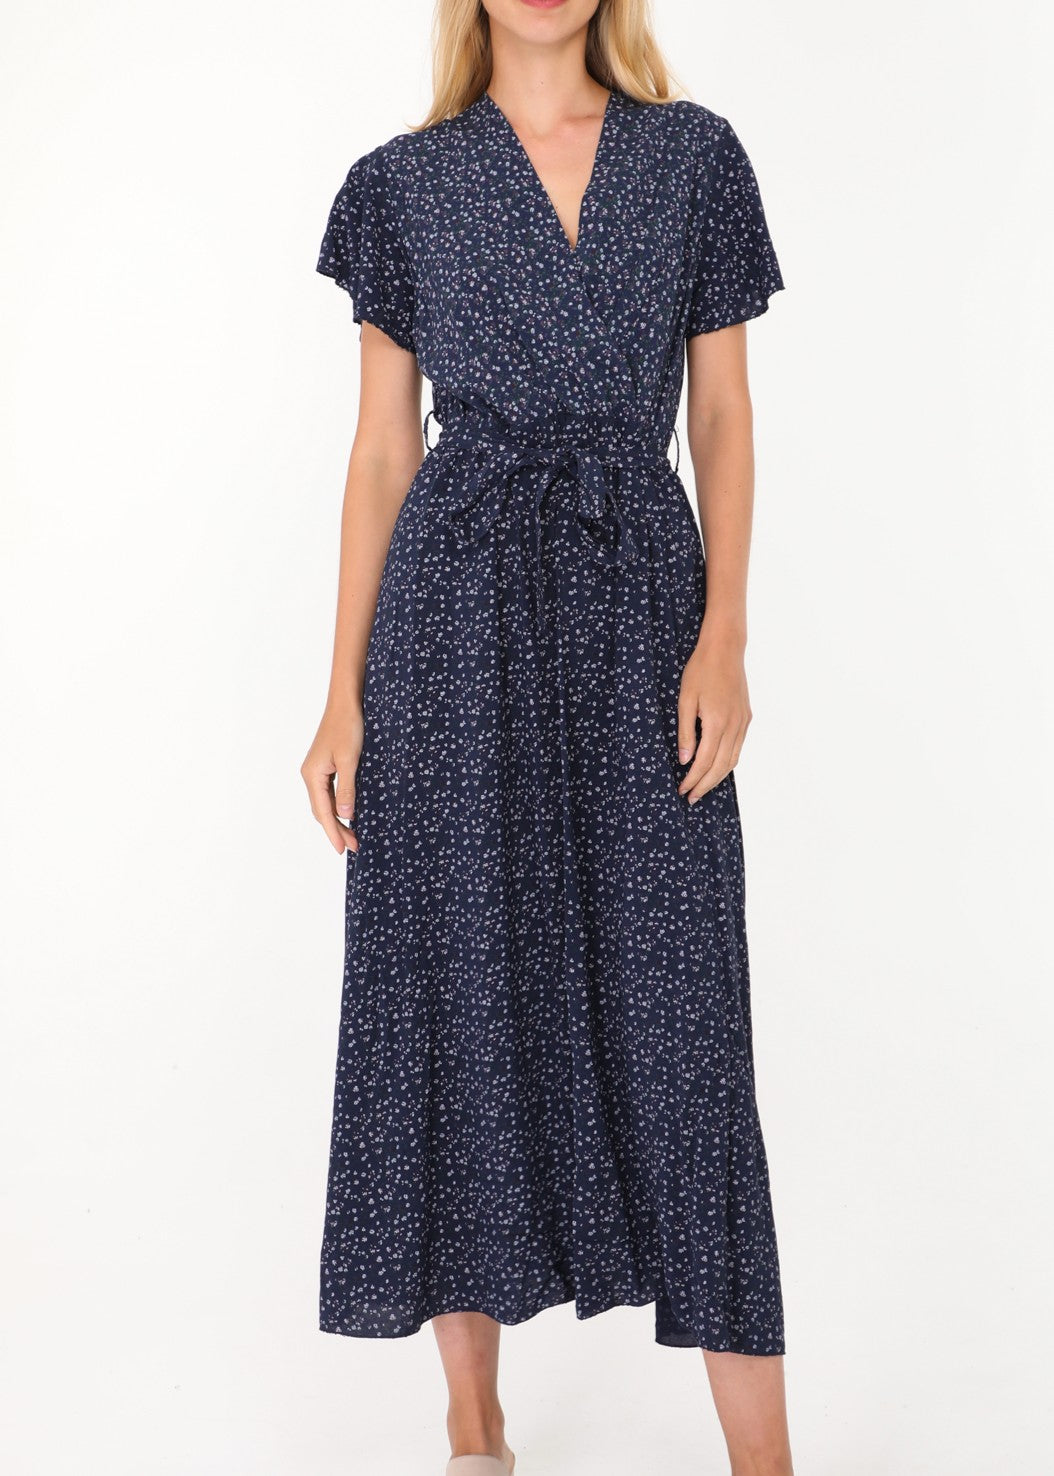 COLETTE - Floral Summer Dress - Navy